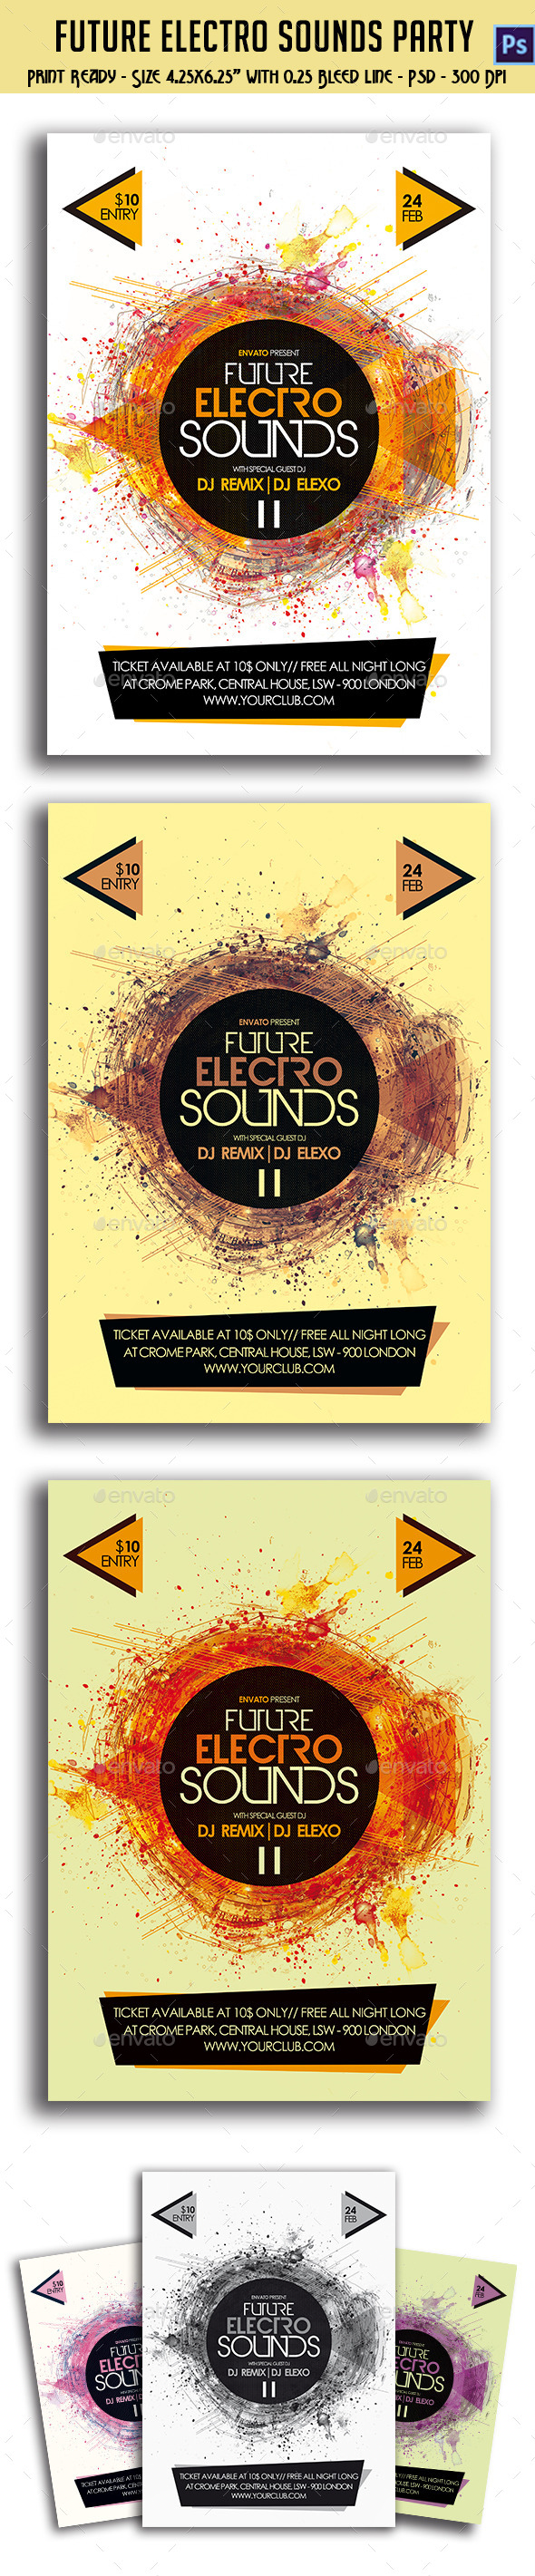 GraphicRiver Future Electro Sounds Party Party Flyer 10998348